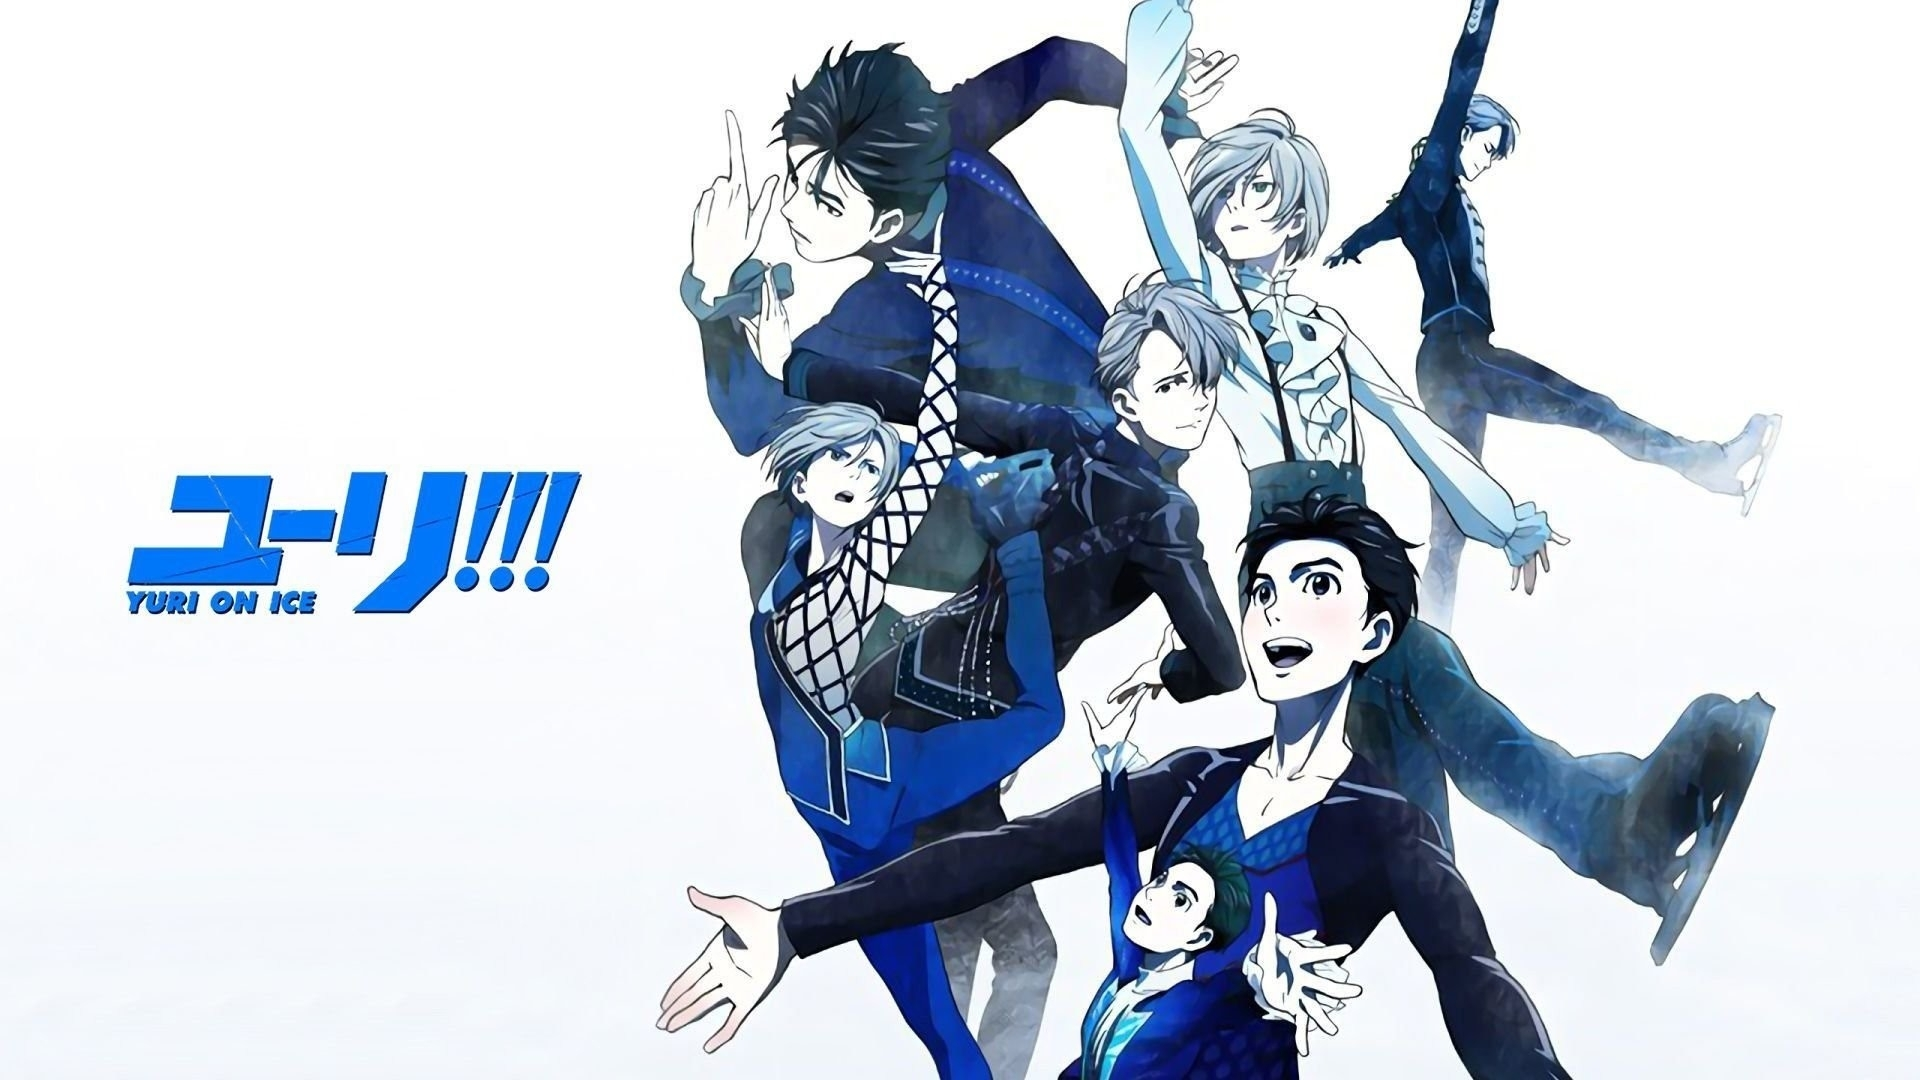 yuri on ice wallpapers (61+ images)